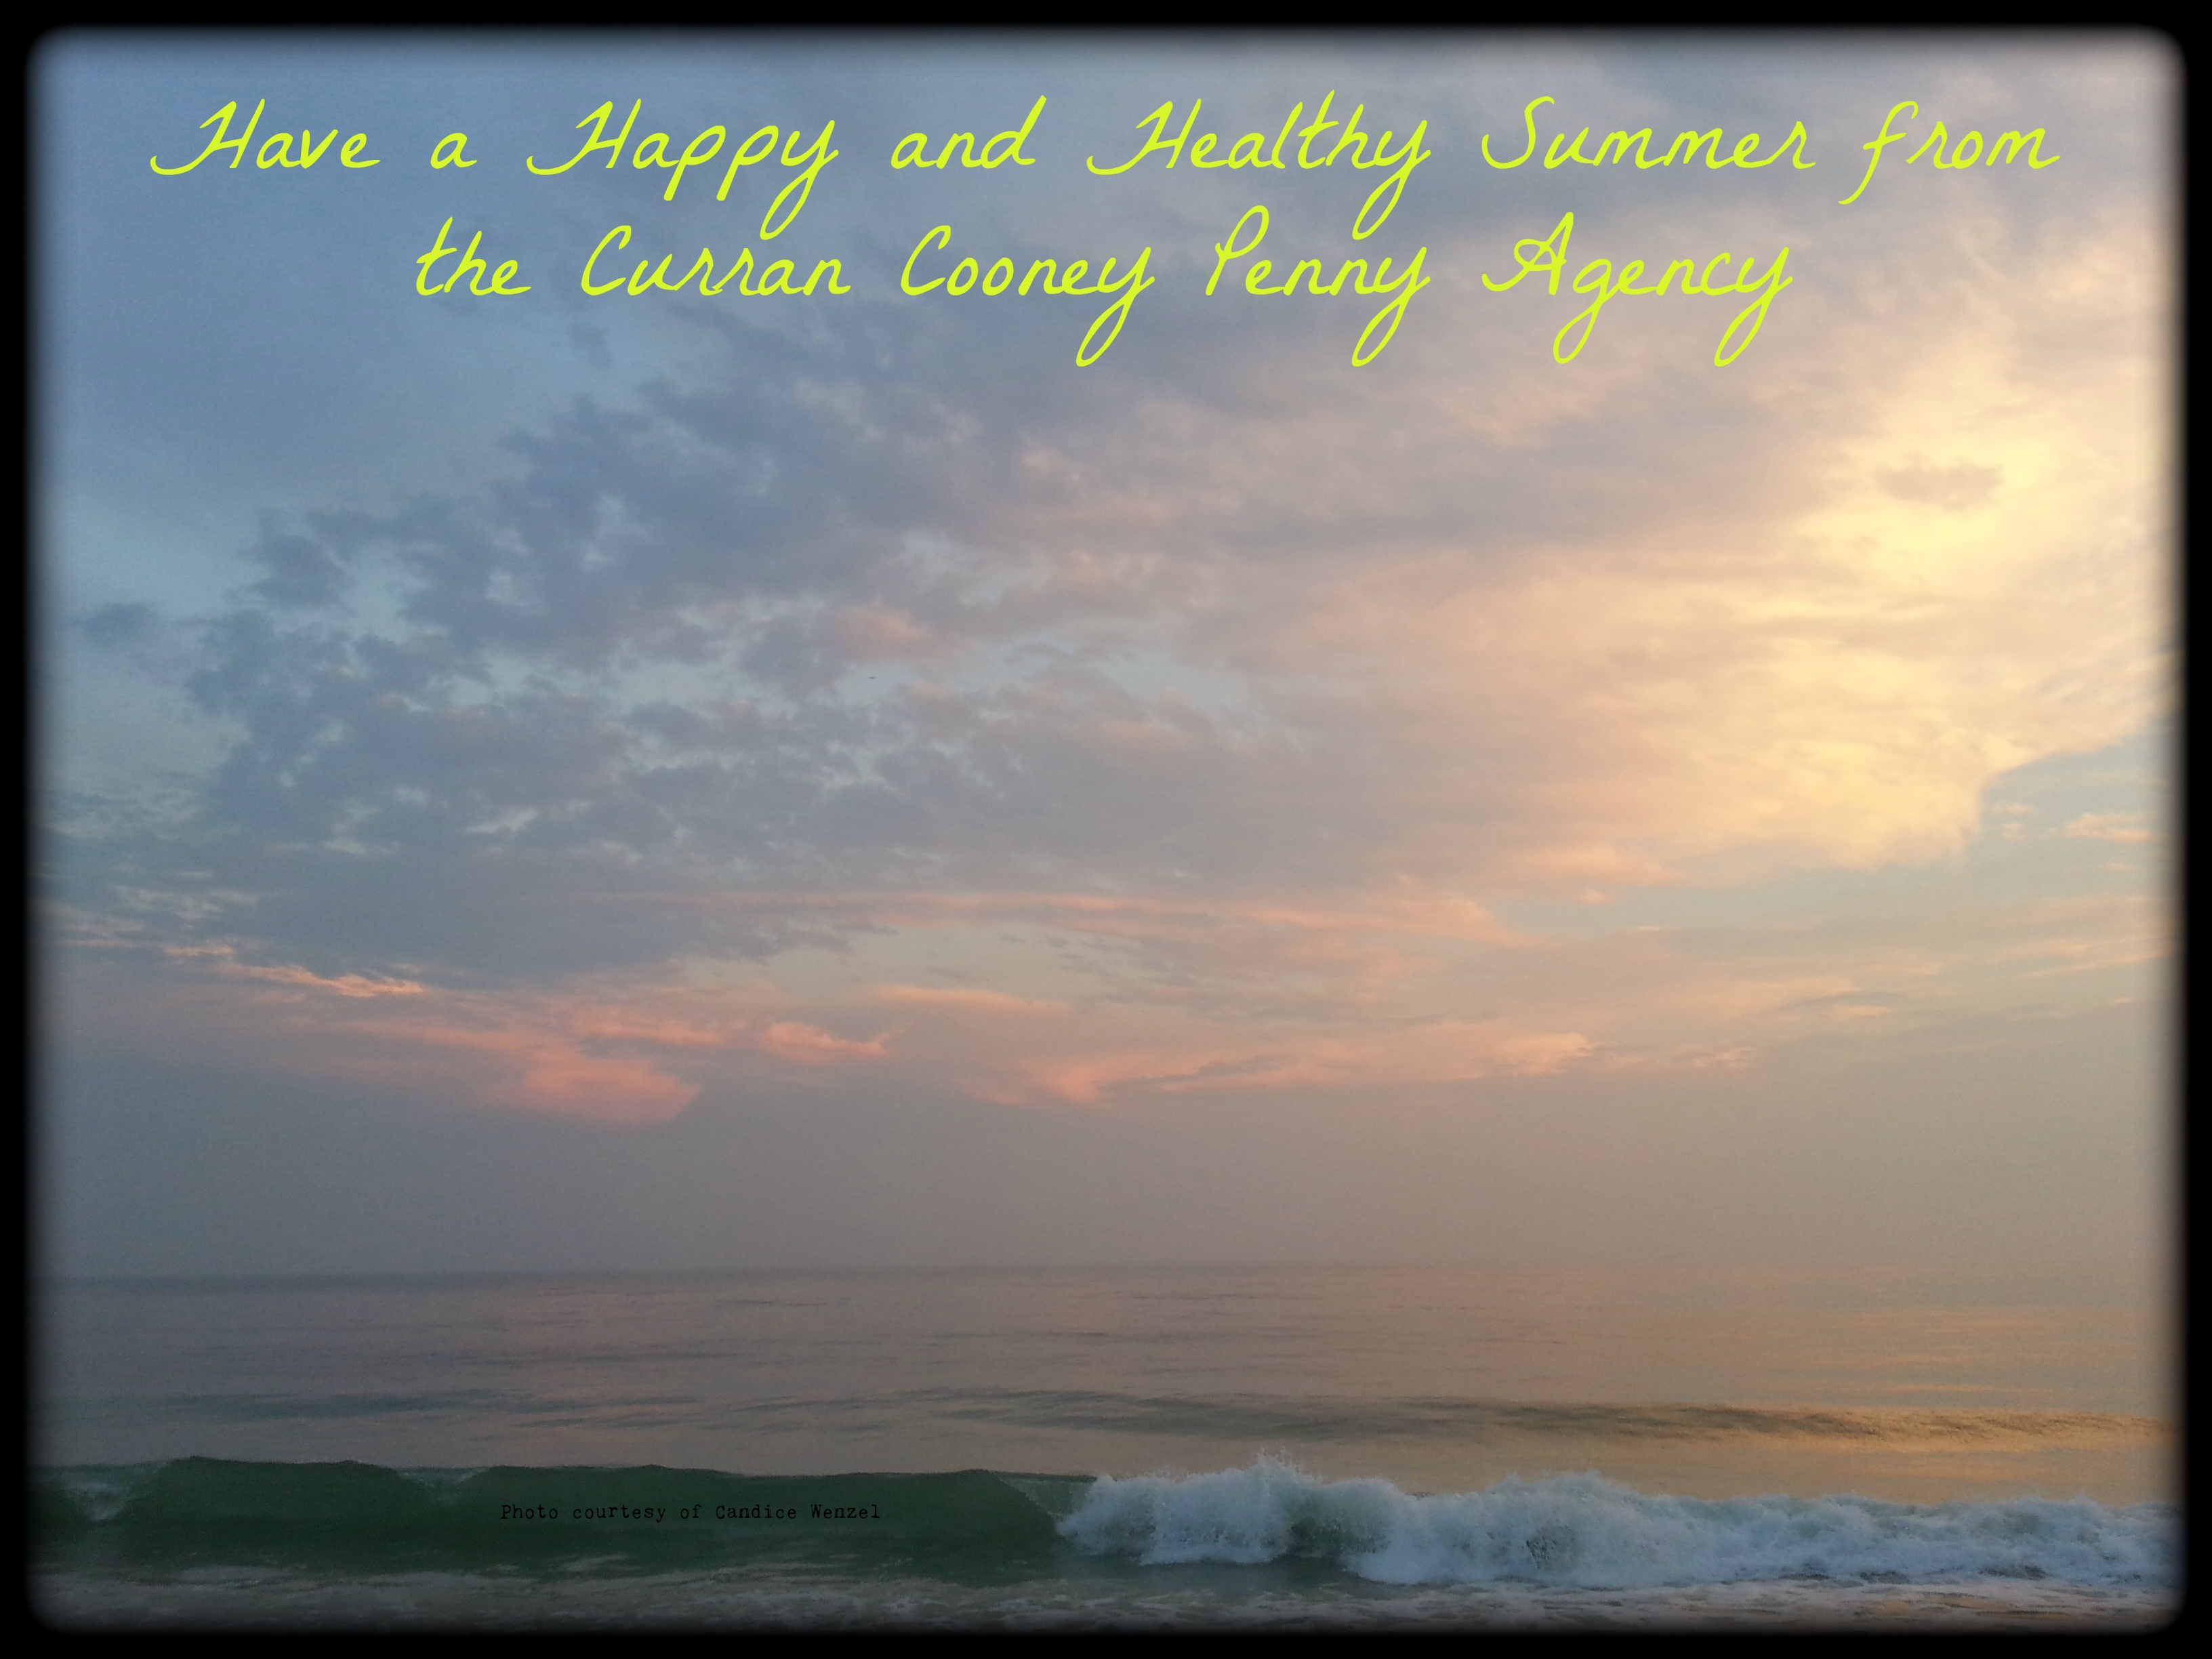 Have a Happy and Healthy Summer from the Curran Cooney Penny Agency.  Photo courtesy of Candice Wenzel